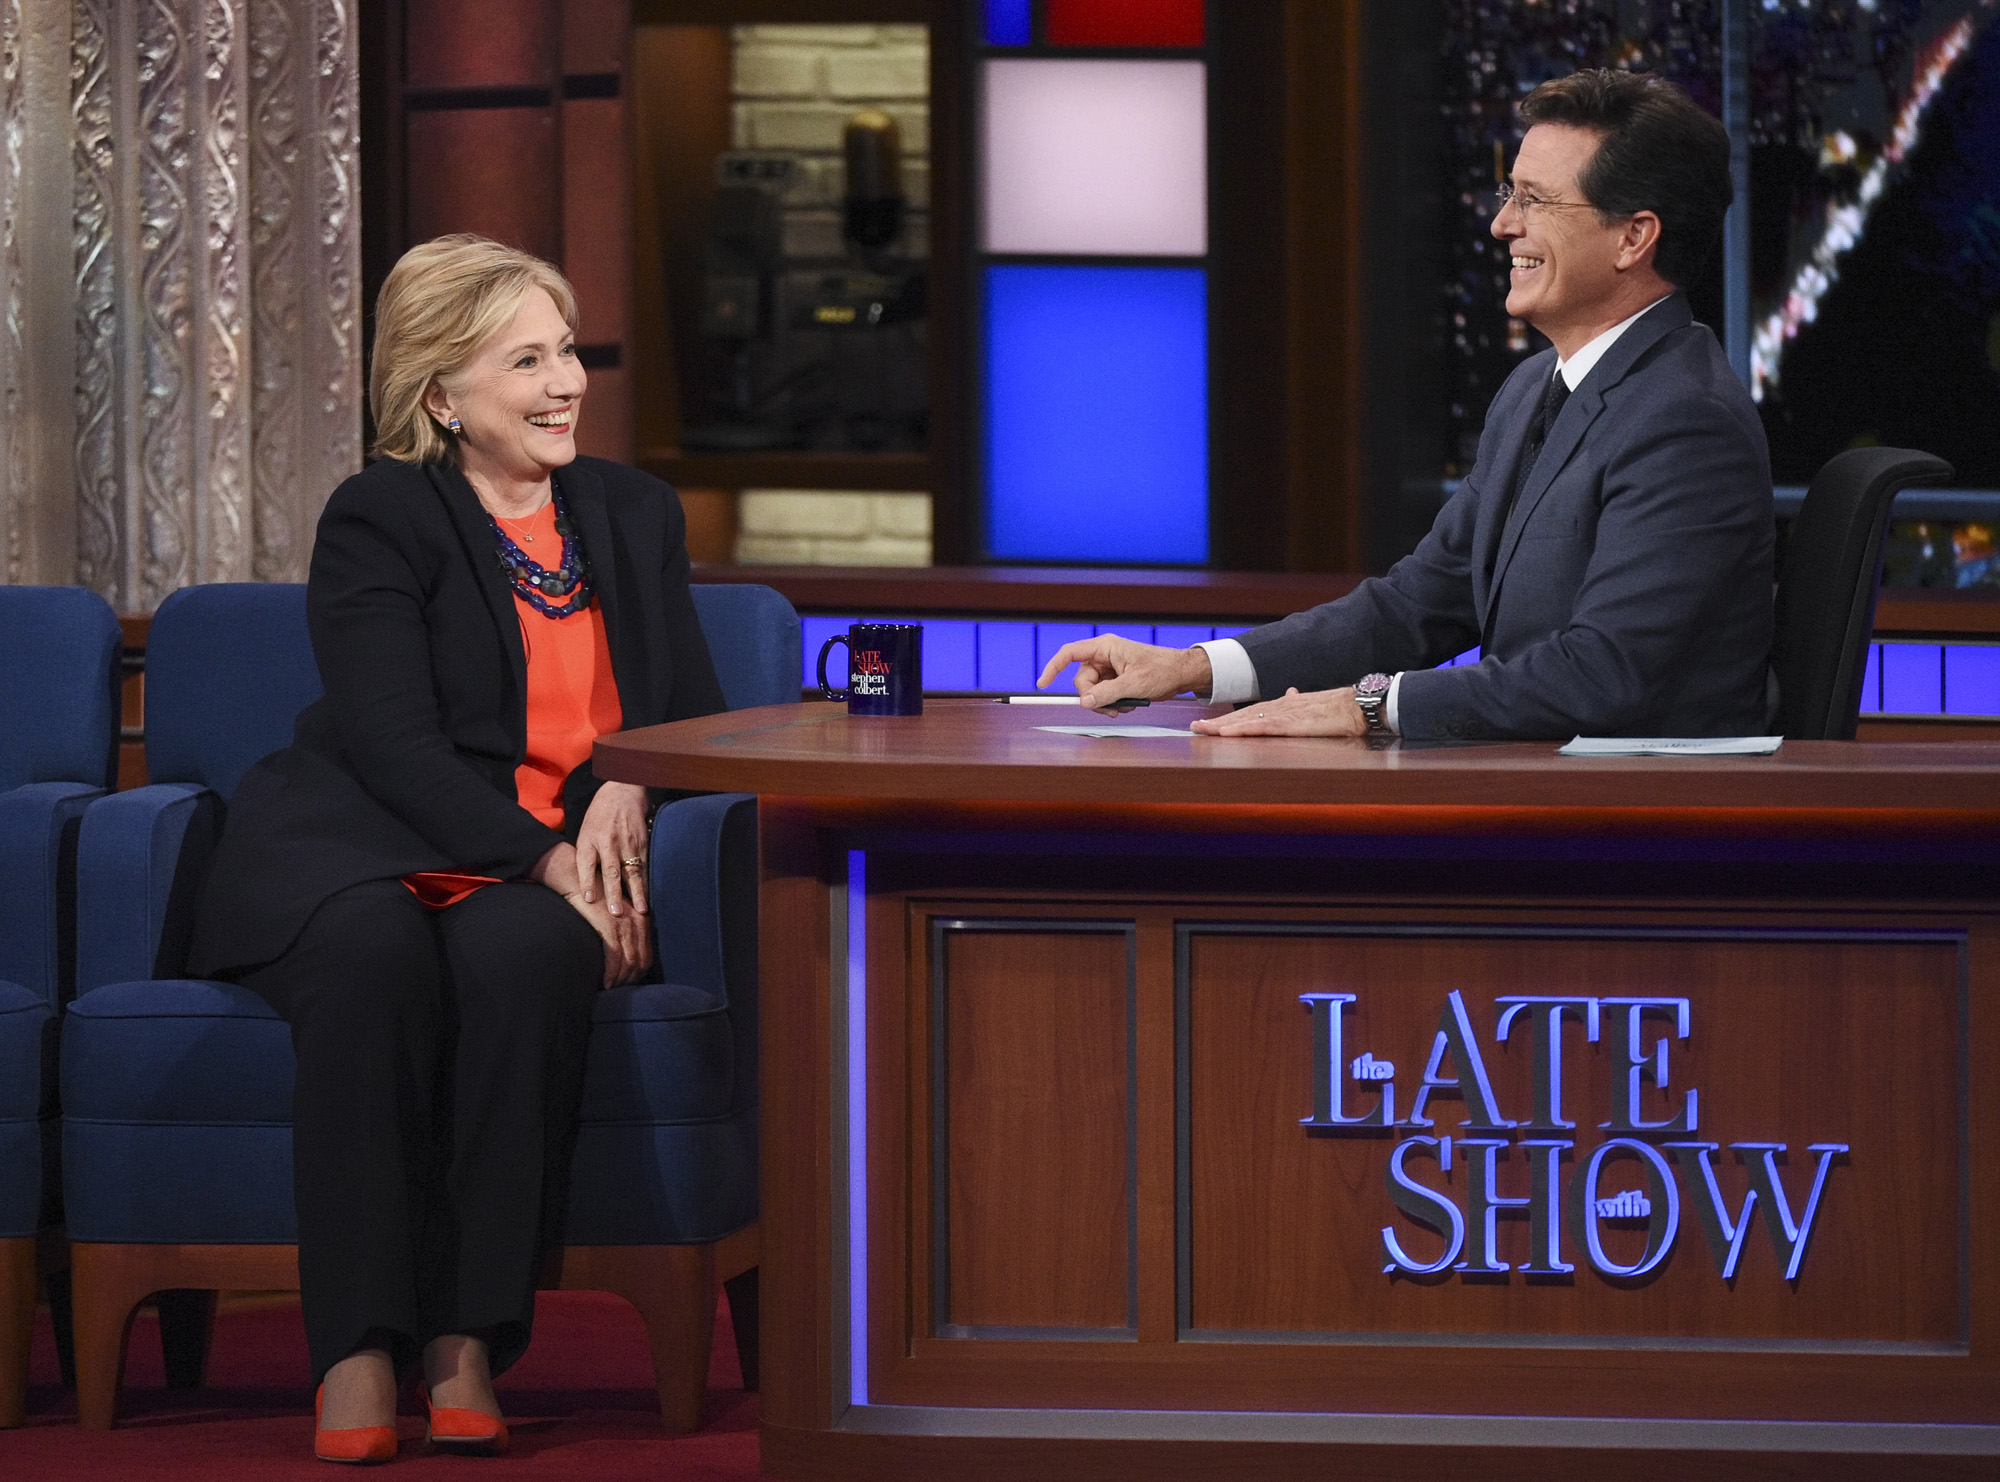 Presidential Candidate Hillary Clinton chats with Stephen on The Late Show with Stephen Colbert on Oct. 27, 2015.